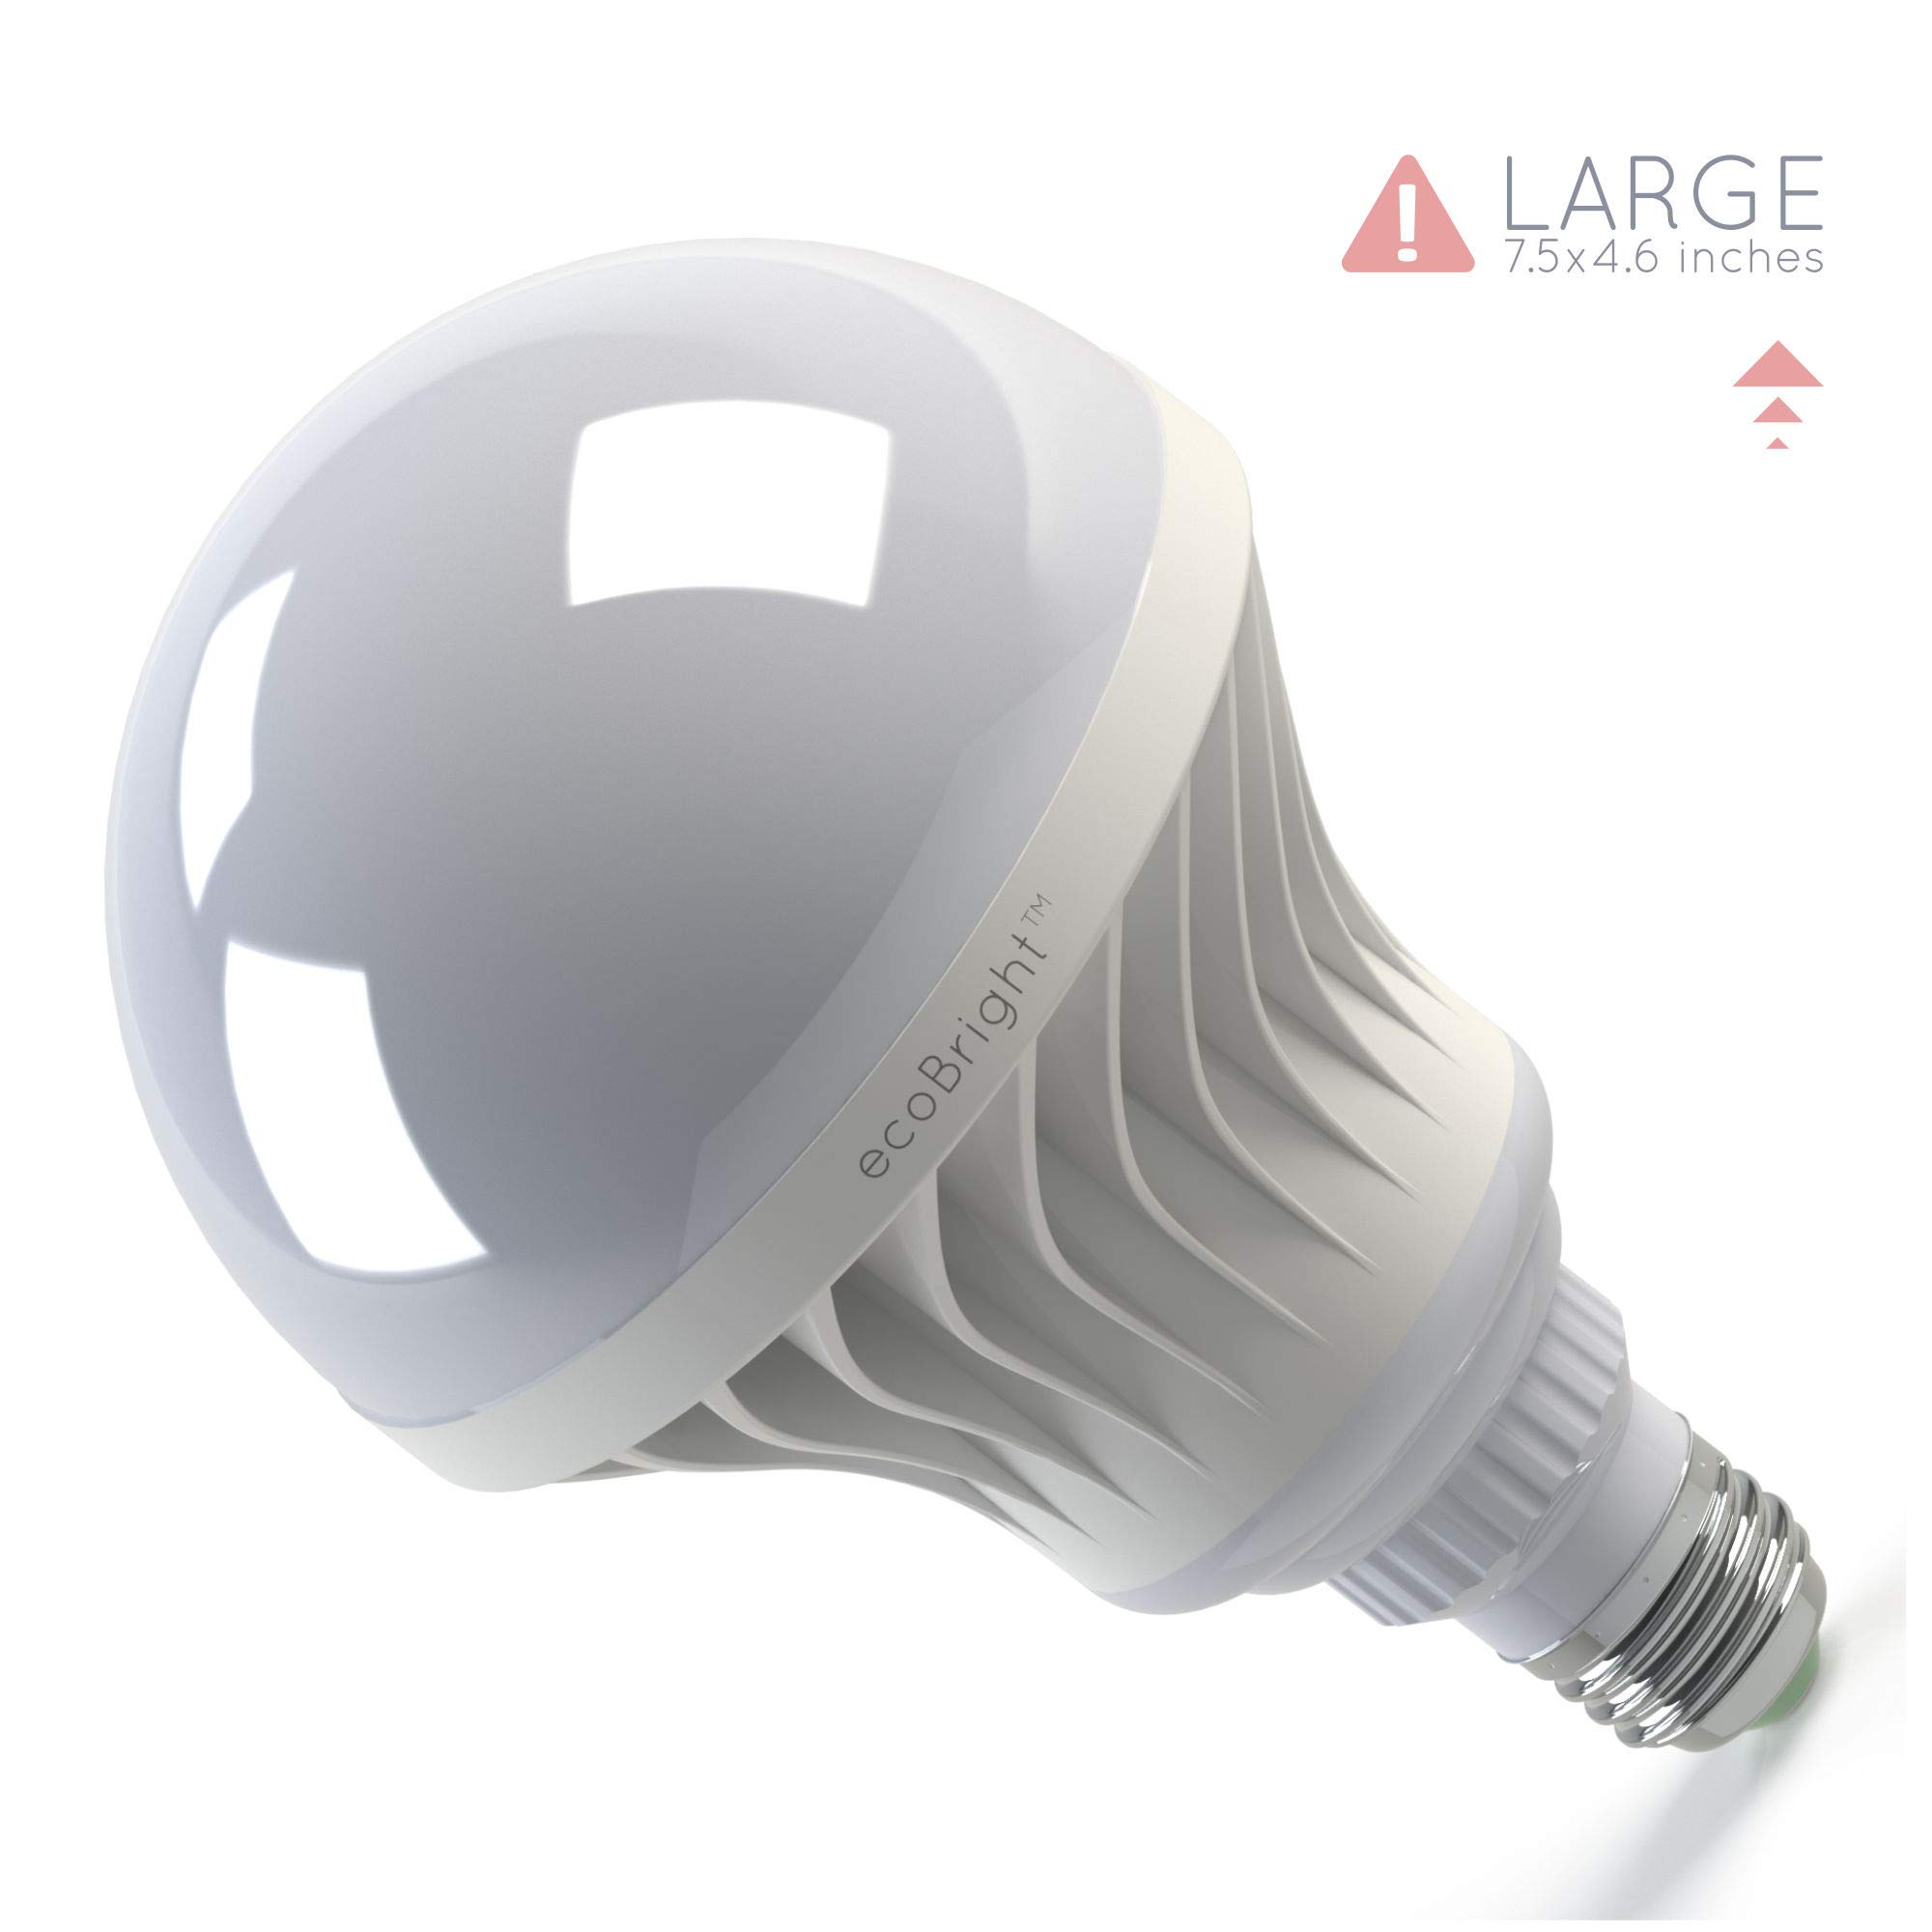 ecoBright 30W (250W 3000LM LED Light Bulb, 3000K Warm White (non-dimmable) by ecoBright